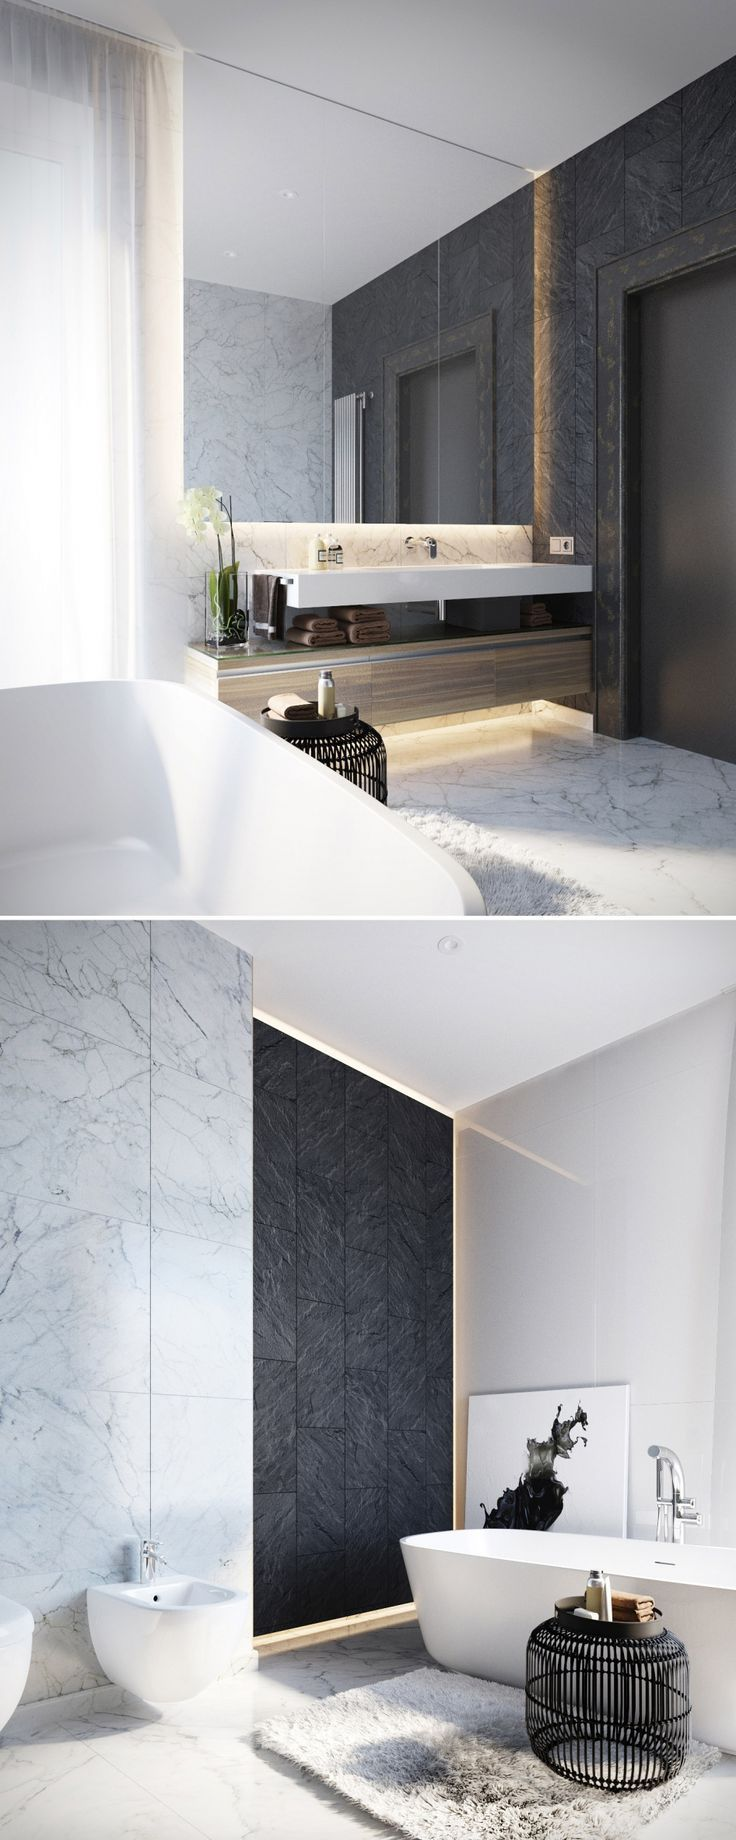 Marvelous 17 Best Ideas About Modern Bathrooms On Pinterest Modern Largest Home Design Picture Inspirations Pitcheantrous